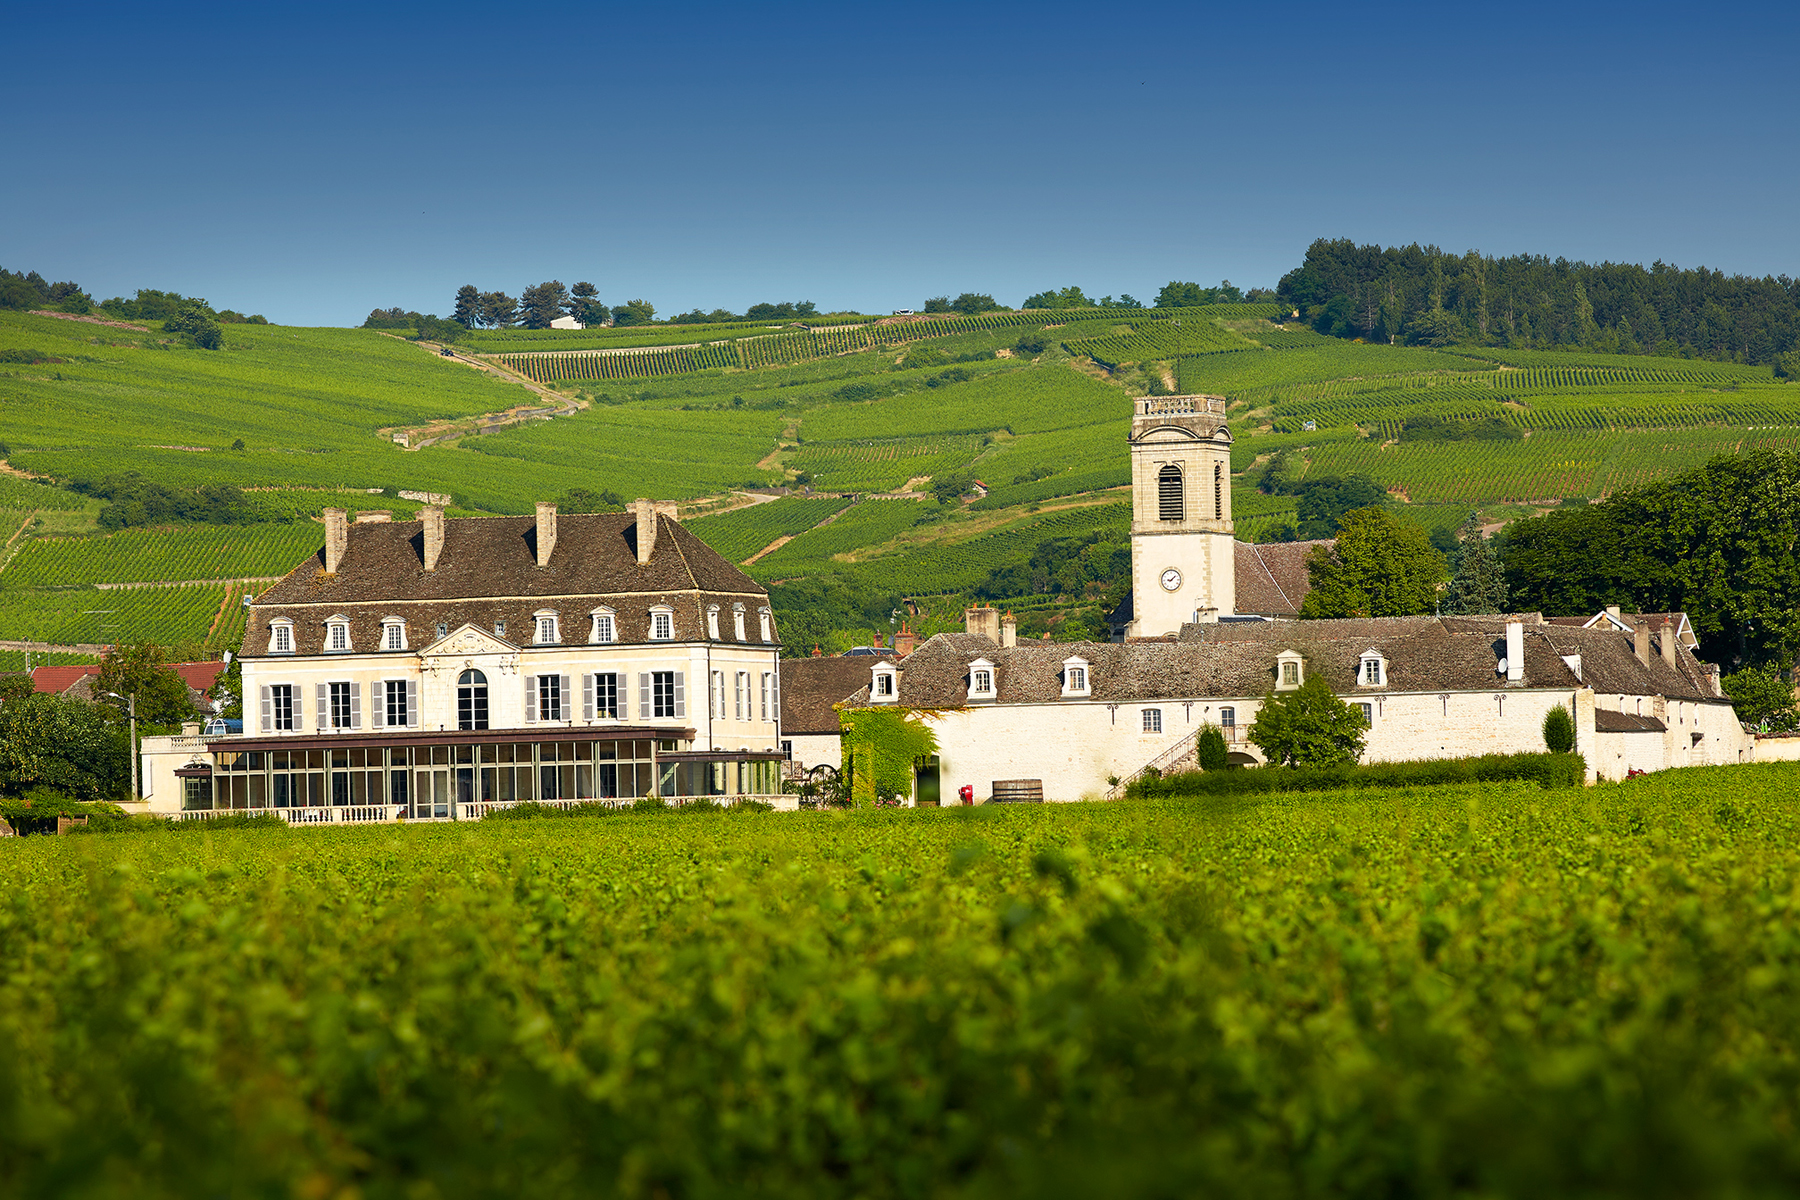 Vineyard and Heritage near Hotel